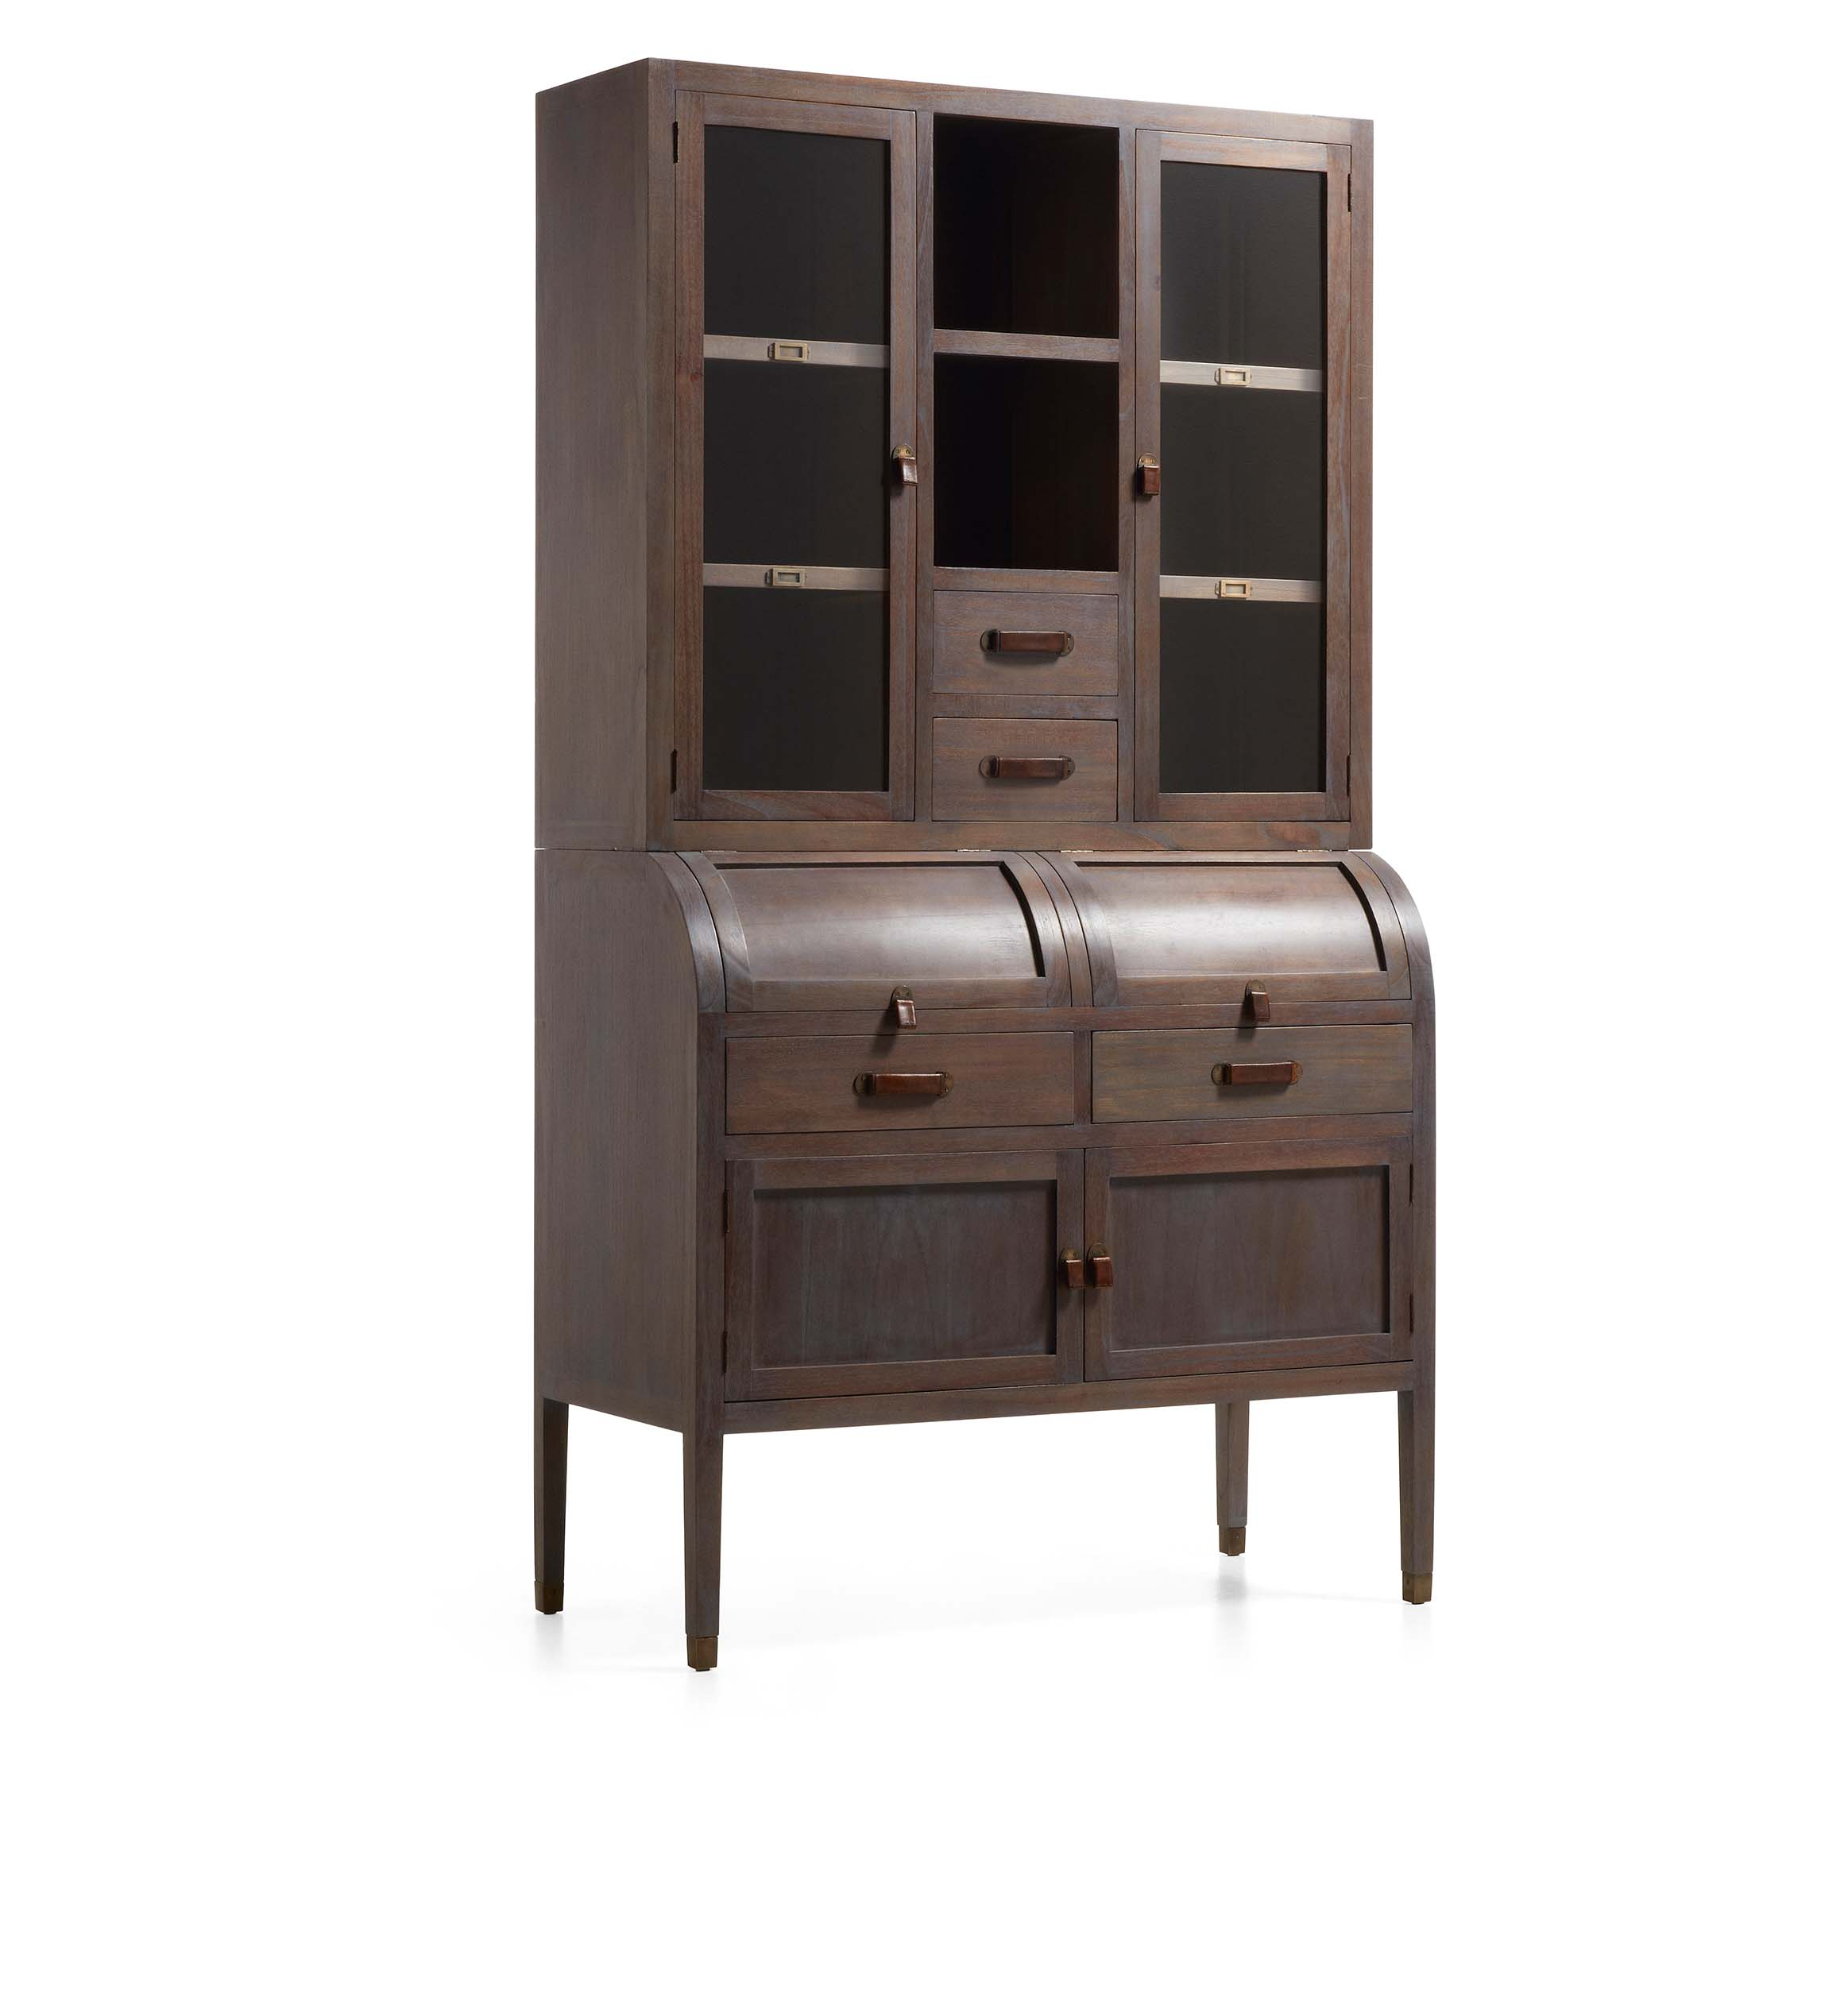 haut de vaisselier amazing vaisselier haut vitree p t coprs with haut de vaisselier affordable. Black Bedroom Furniture Sets. Home Design Ideas